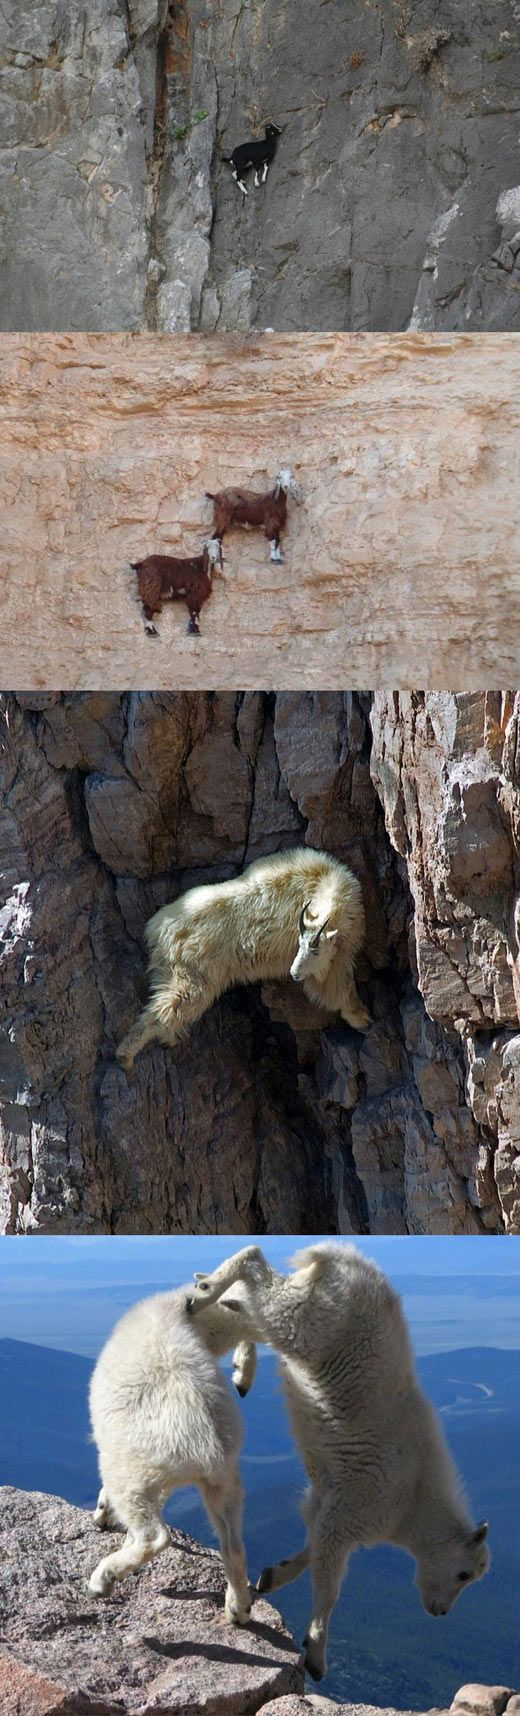 Because I'm a capricorn and must remember that I have very good footing when climbing mountains.  Goats doing what they usually do…: Funny Animals, Animals Goat Esque, Animals Bring, Mountain Goats, Goats Rocks Climbing Mountain, Animals Goats, Animal